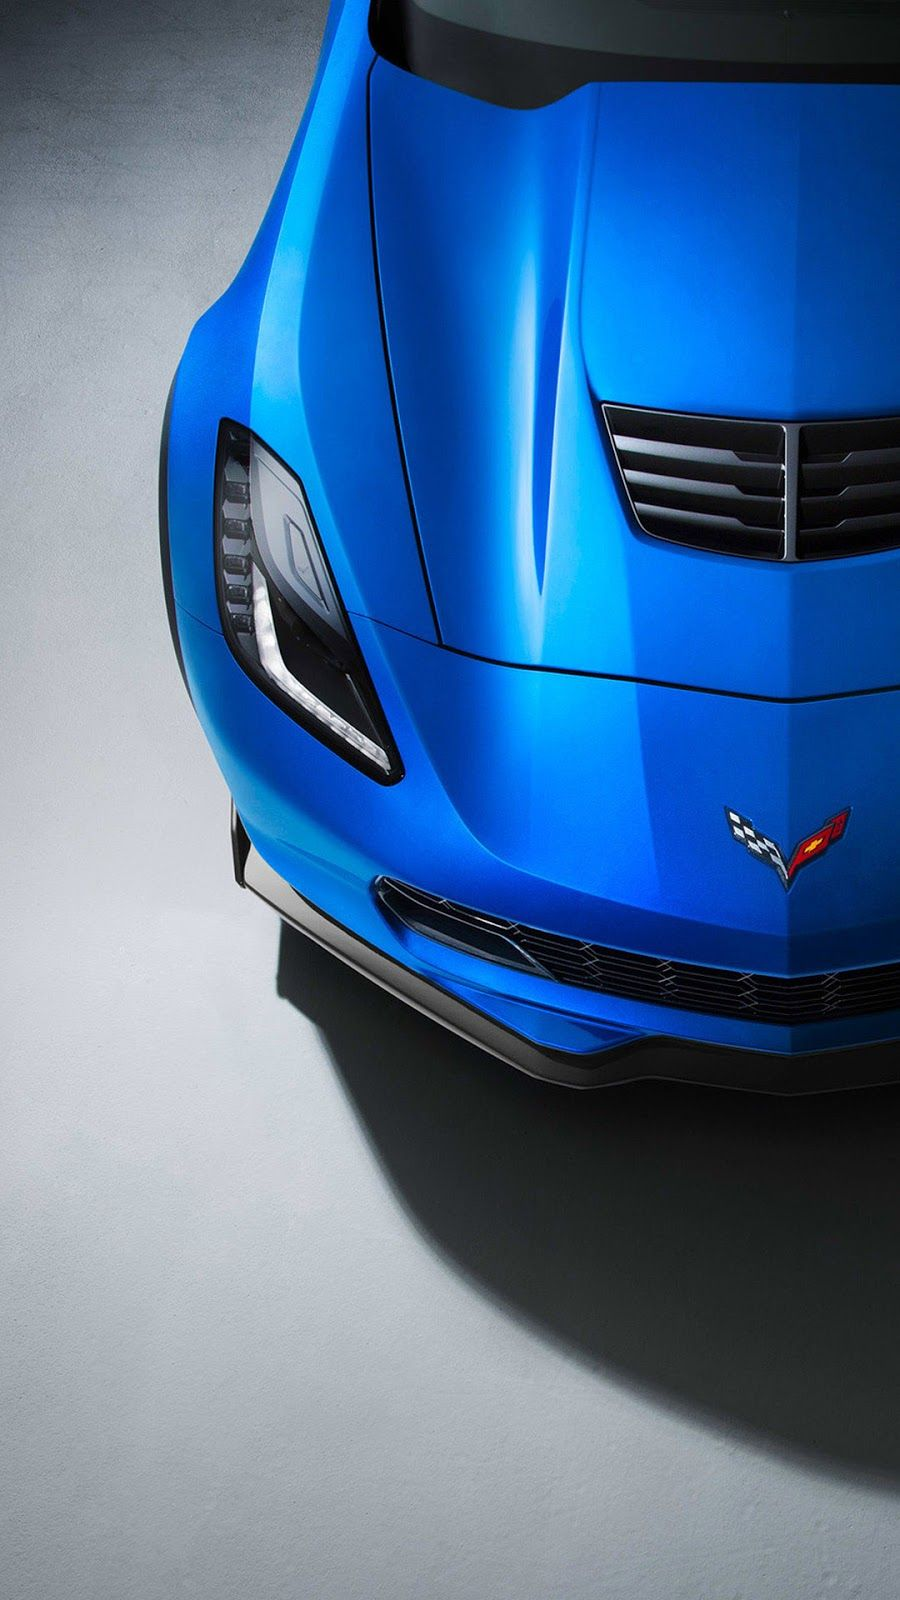 Blue Cool Car Hd Iphone 7 And Iphone 7 Plus Wallpaper Wallpapers